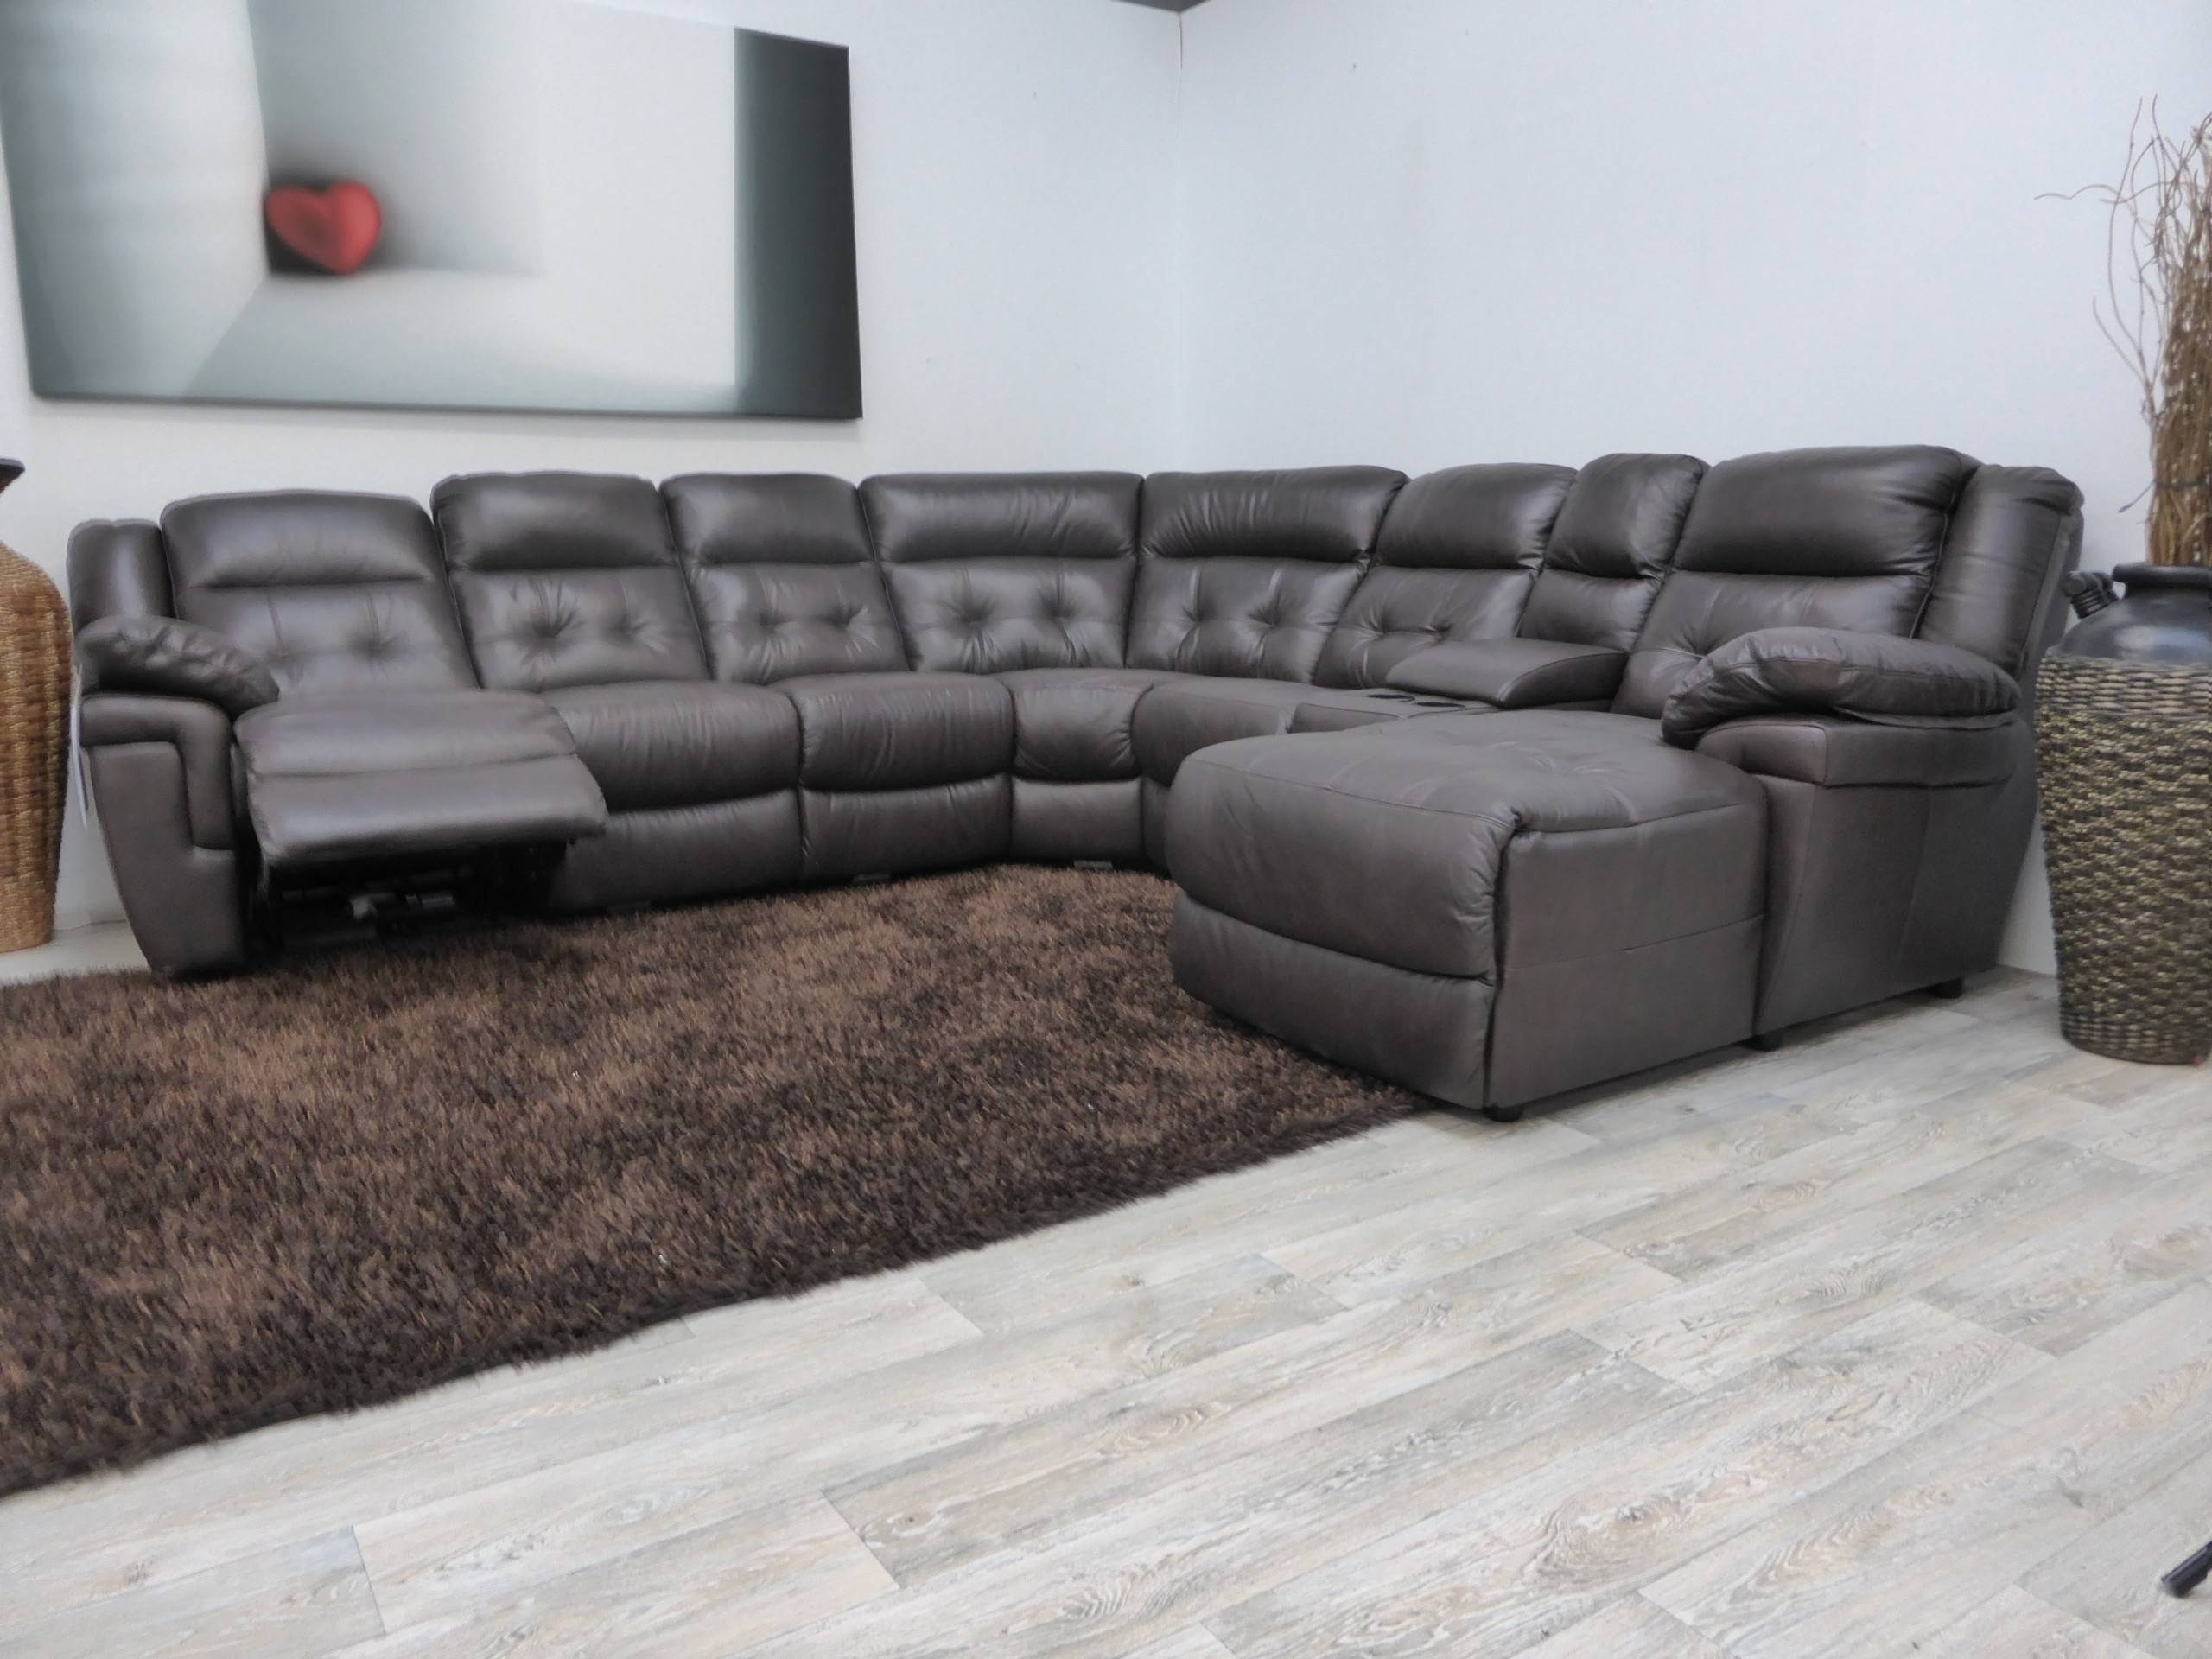 Chesterfield Corner Sofa London Sectional Nigeria Sofas Uk Leather Regarding London Ontario Sectional Sofas (View 9 of 10)